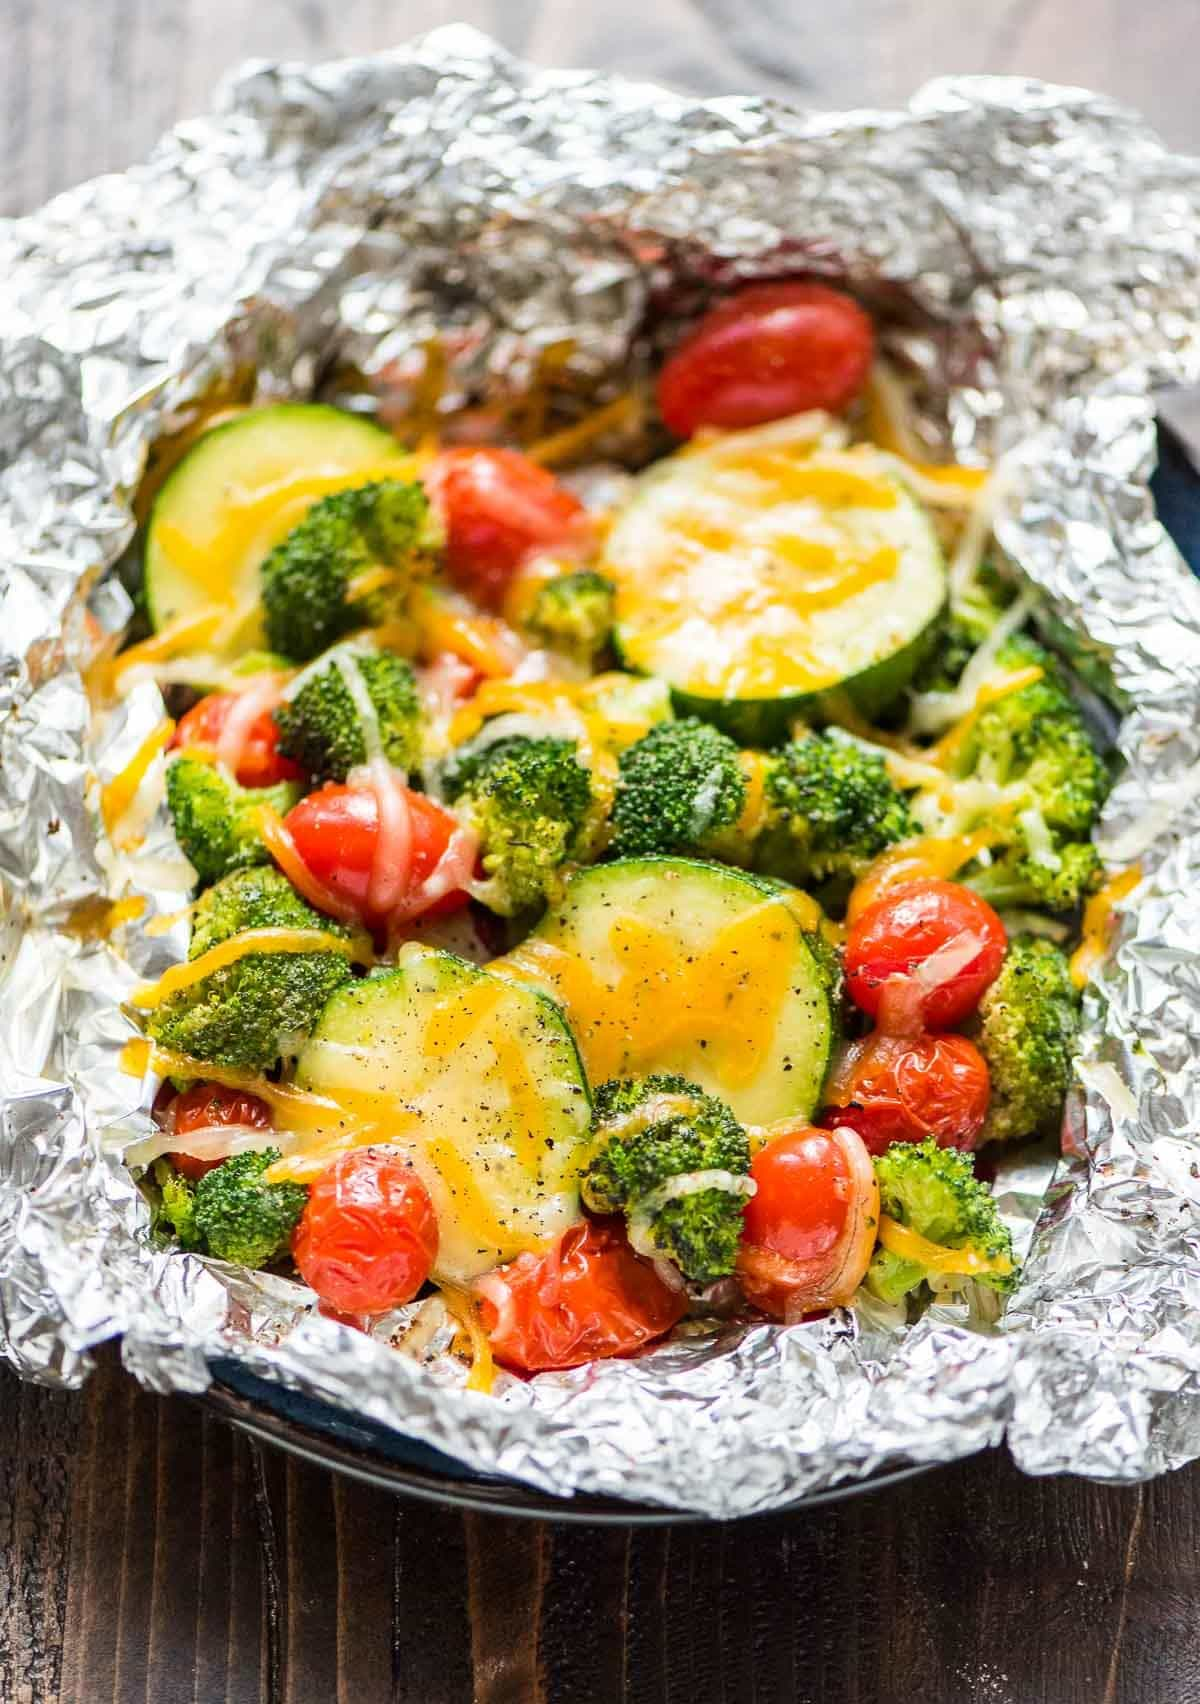 Maple Mustard Pork Tenderloin with Grilled Vegetables in Foil. A healthy, easy dinner recipe with NO CLEAN UP! @wellplated